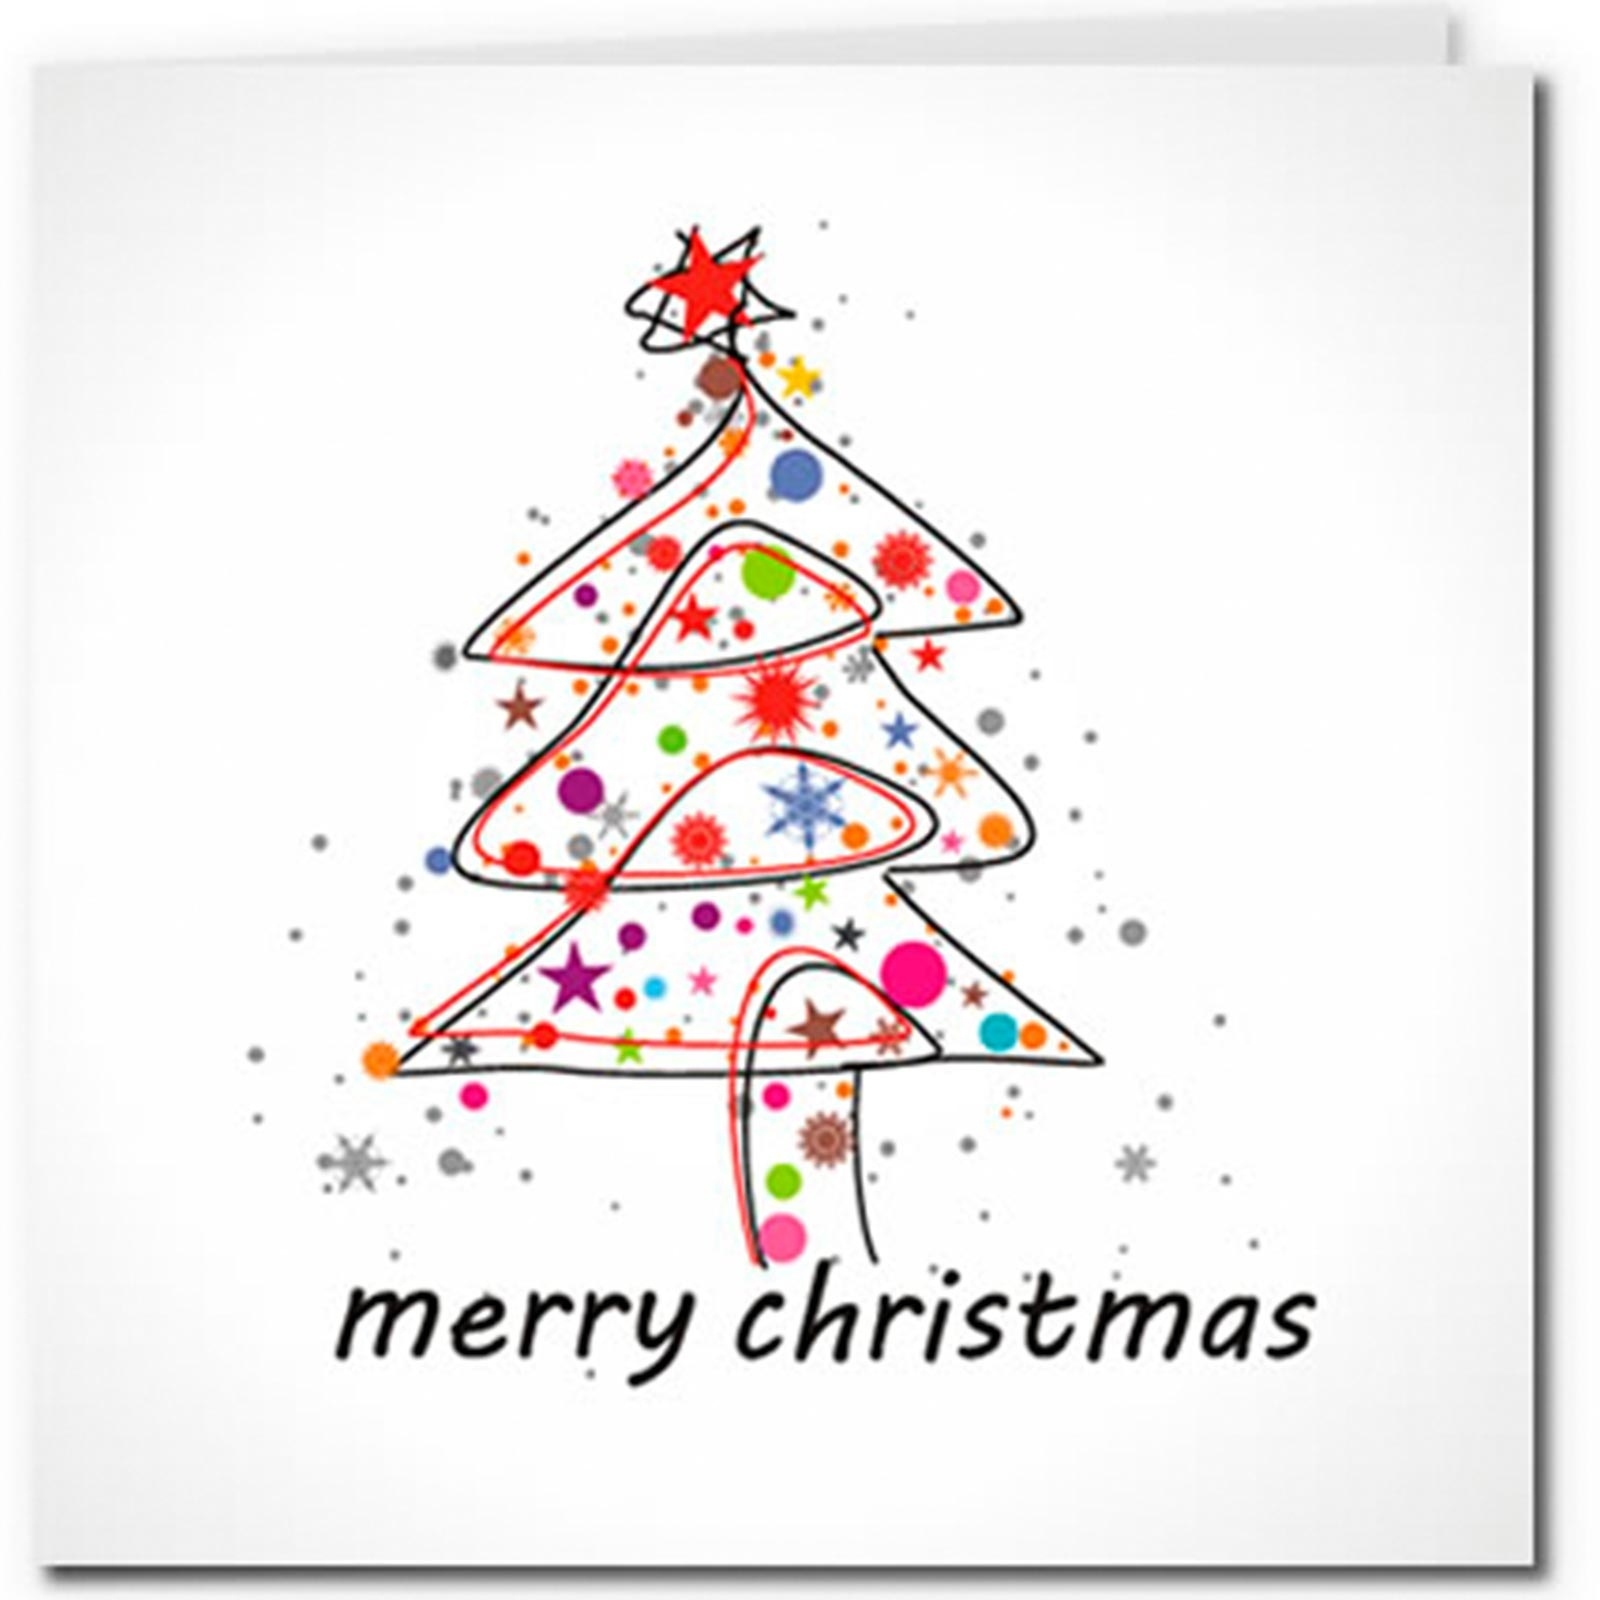 Free Christmas Cards To Print Out And Send This Year   Reader's Digest - Free Printable Xmas Cards